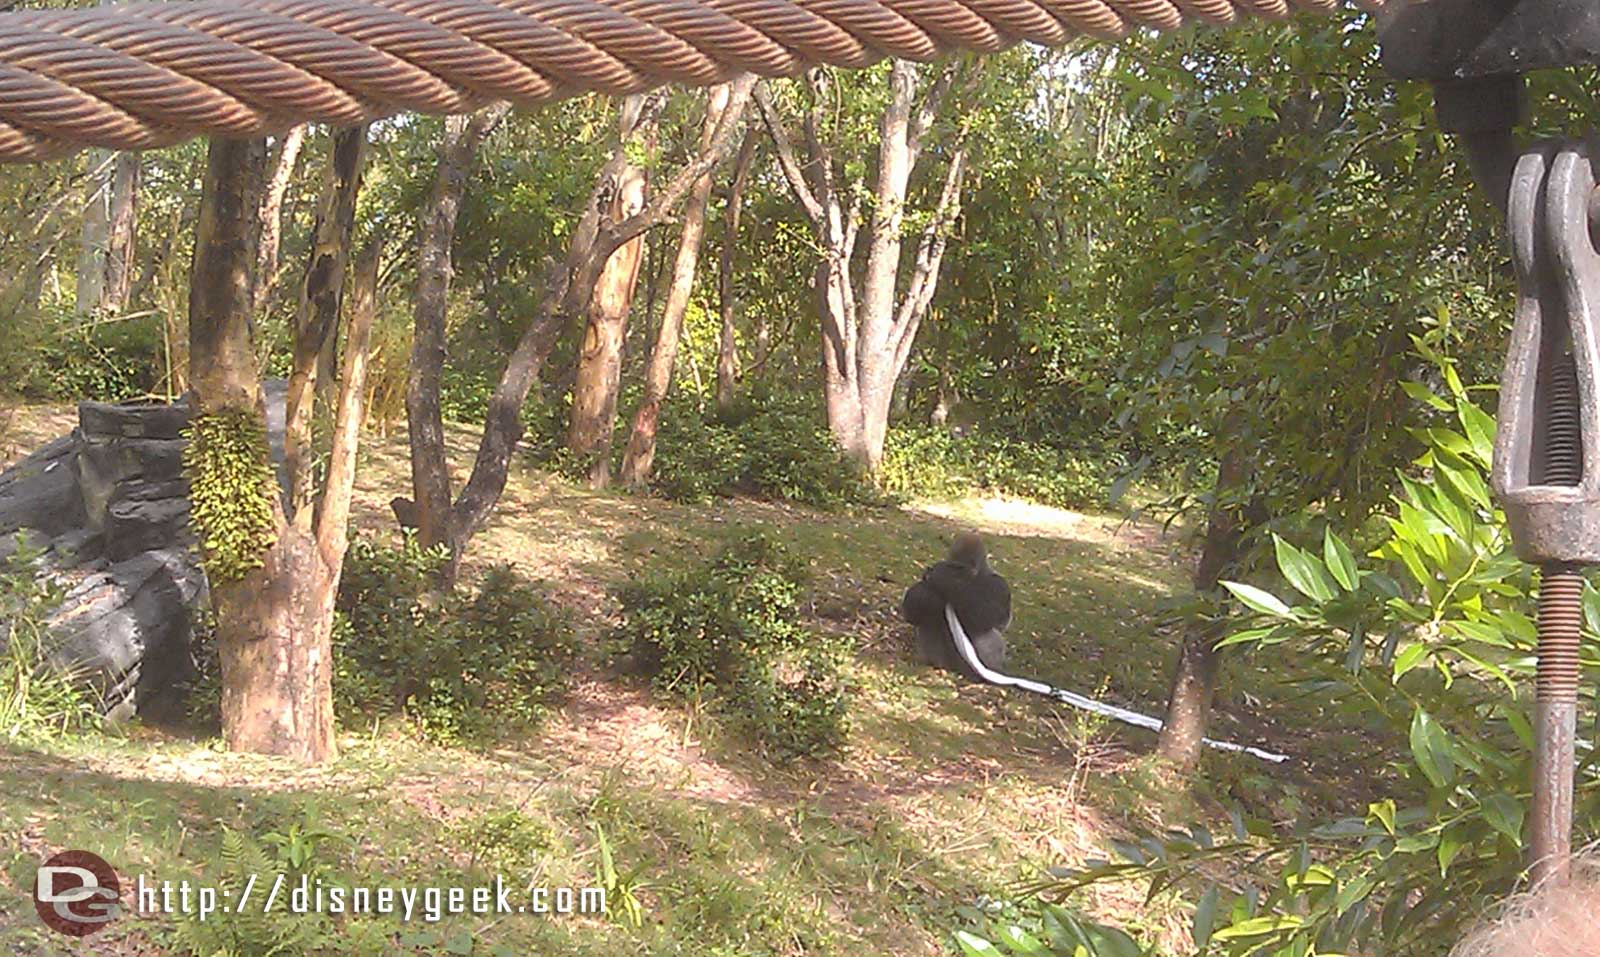 Pangani Forest, one of the male silverbacks playing with a blanket